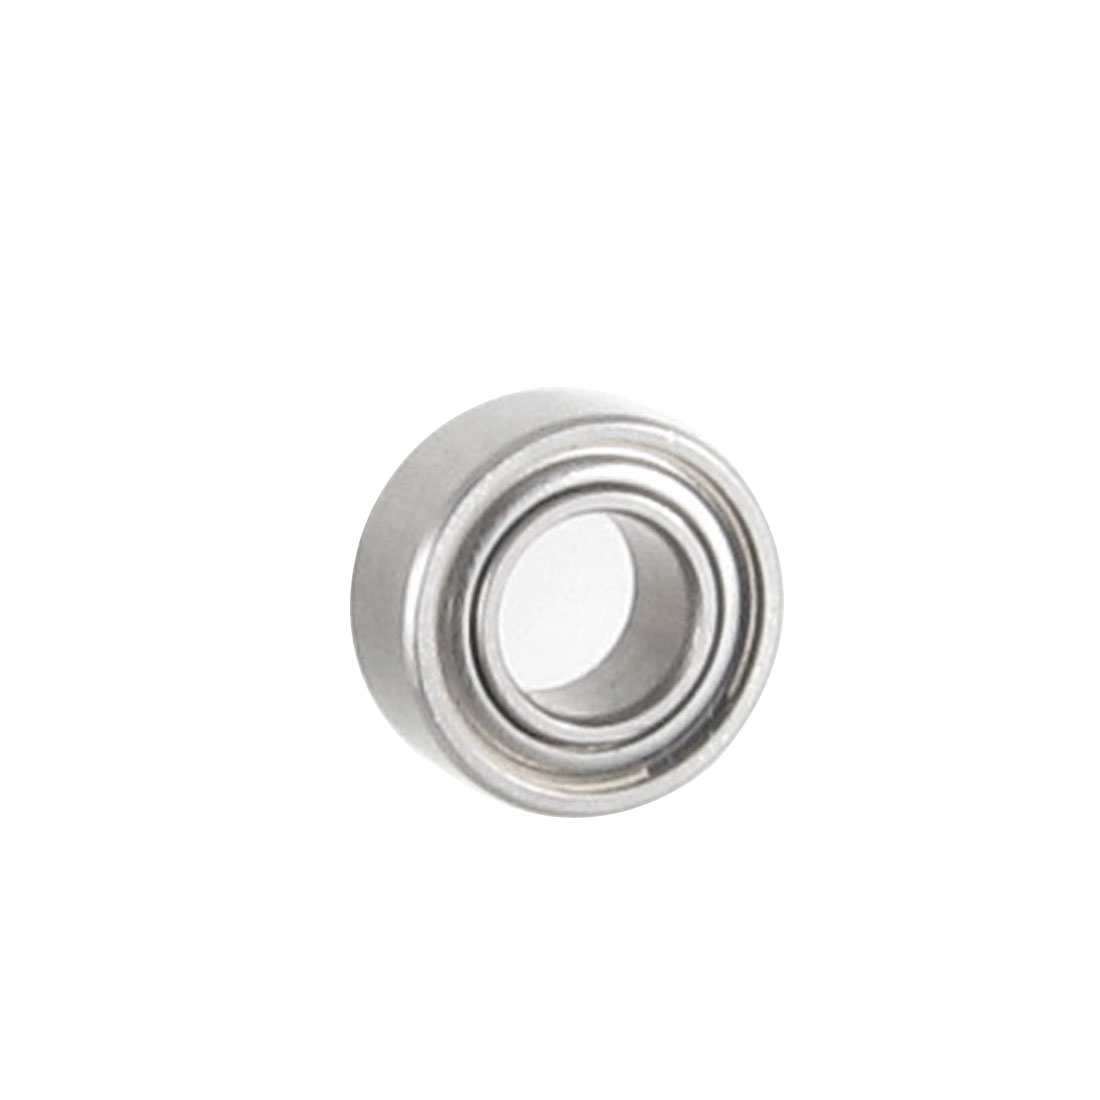 3mmx6mmx2.5mm Stainless Steel Shielded Ball Bearing for Roller-Skating